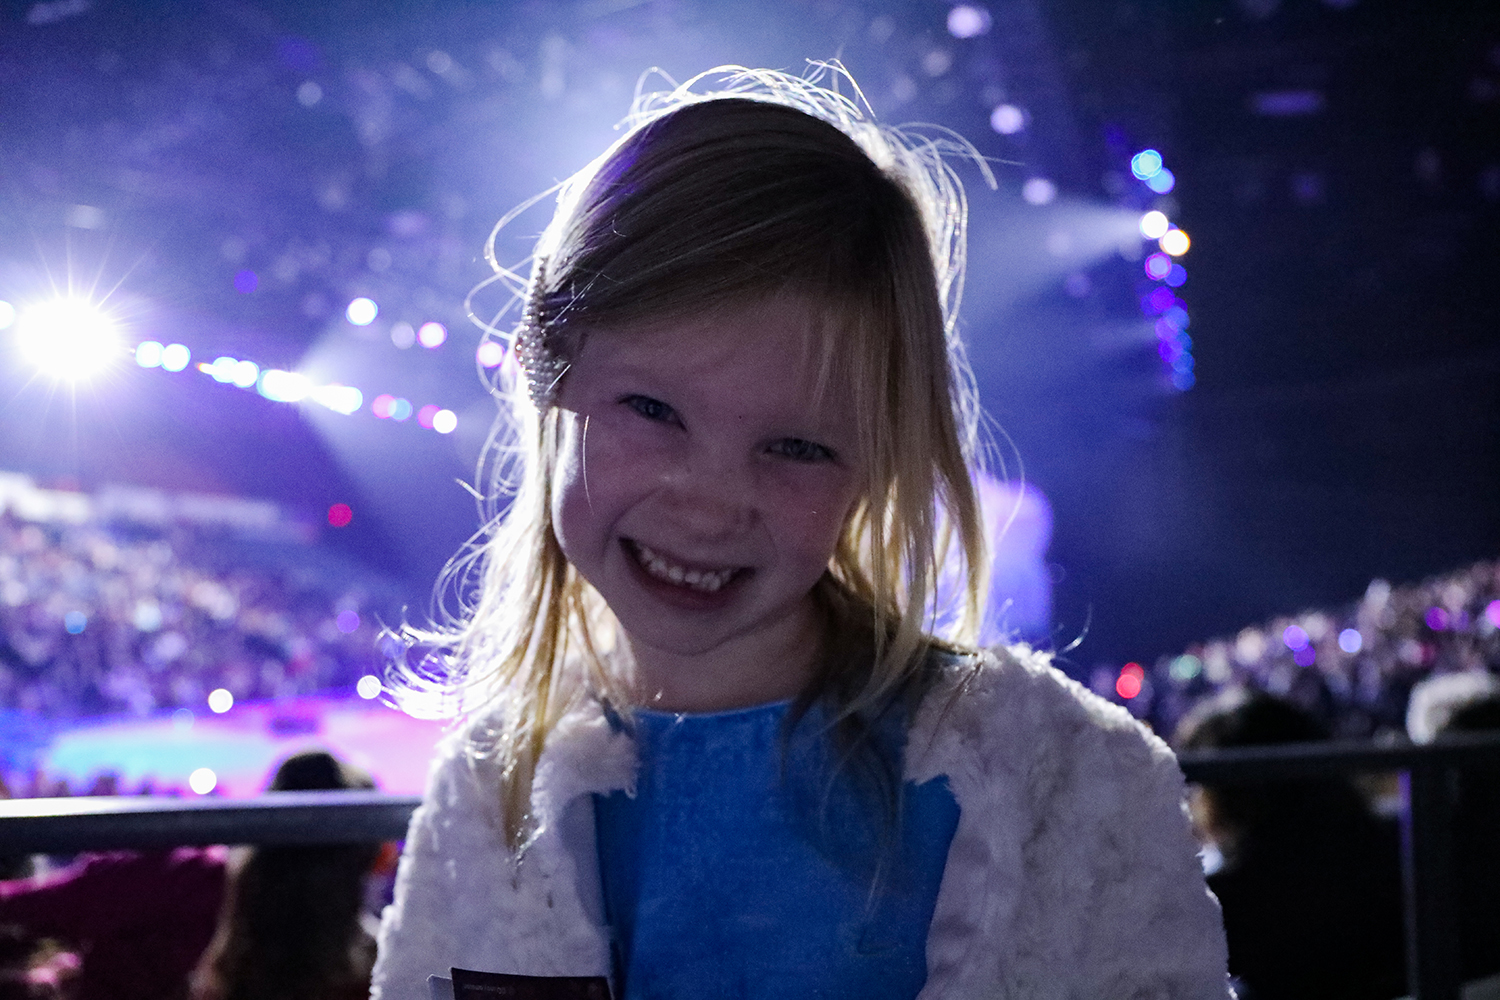 Disney on Ice Review: What this family thought and would we go again?